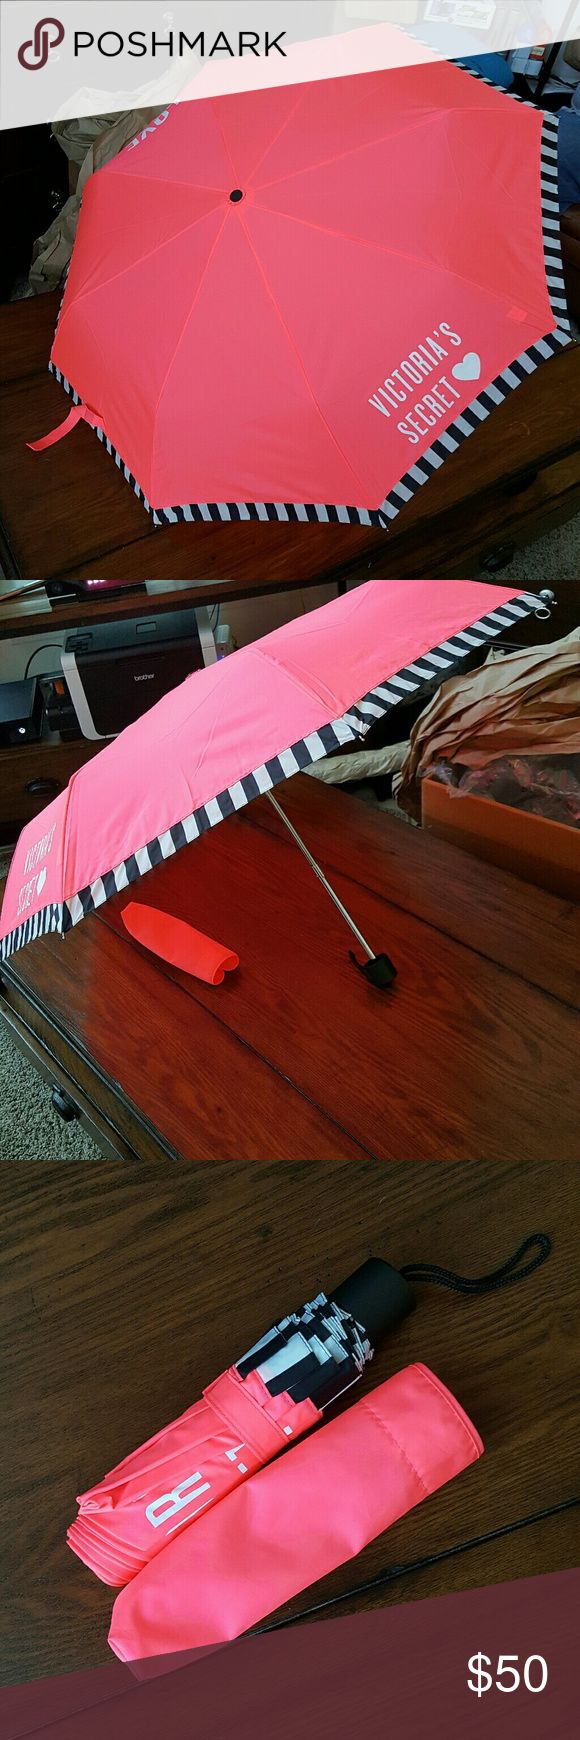 NWOT! Victoria's Secret Compact Umbrella New without tags, never used, excellemt condition!  Victoria's Secret Compact Umbrella.  Bright pink, white, black Victoria's Secret Accessories Umbrellas